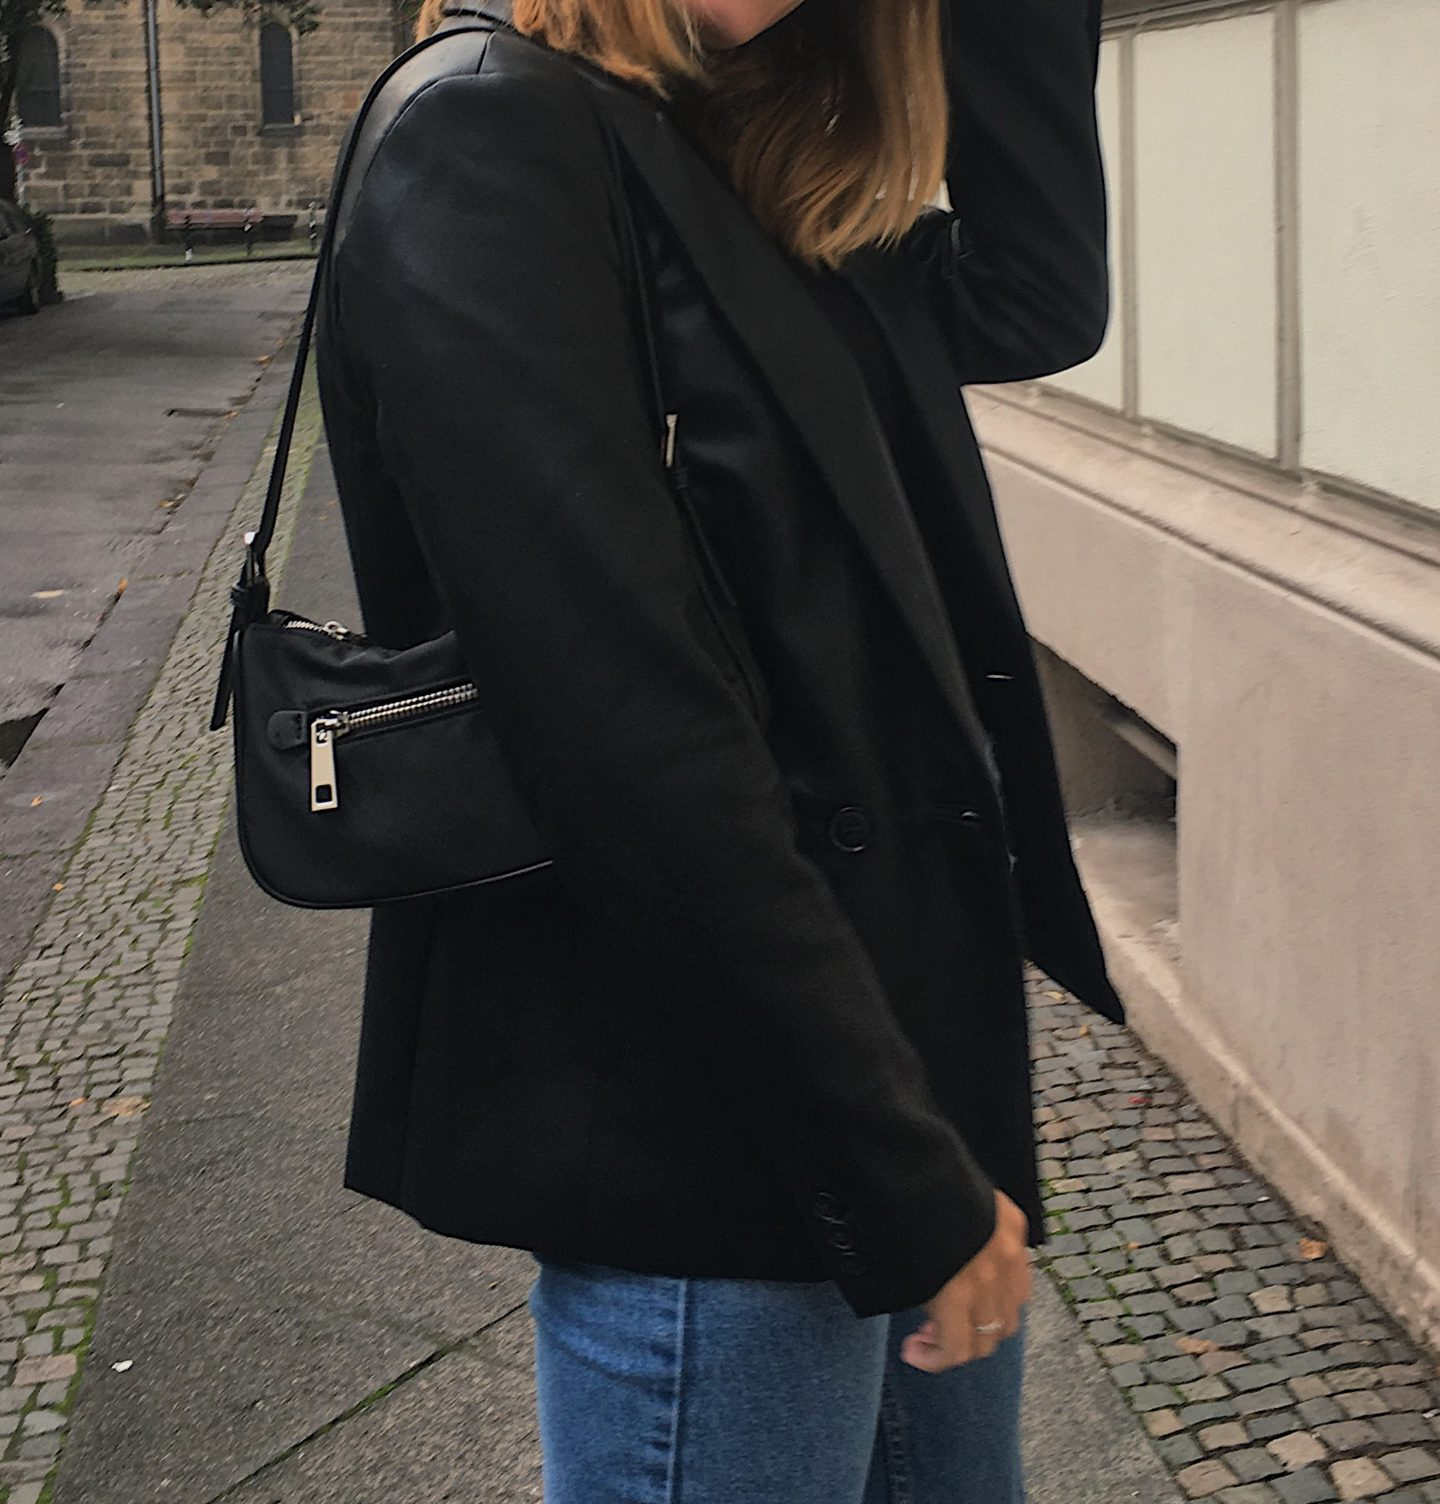 F/W Trend: wearing a leather Blazer and a black turtleneck, small black bag